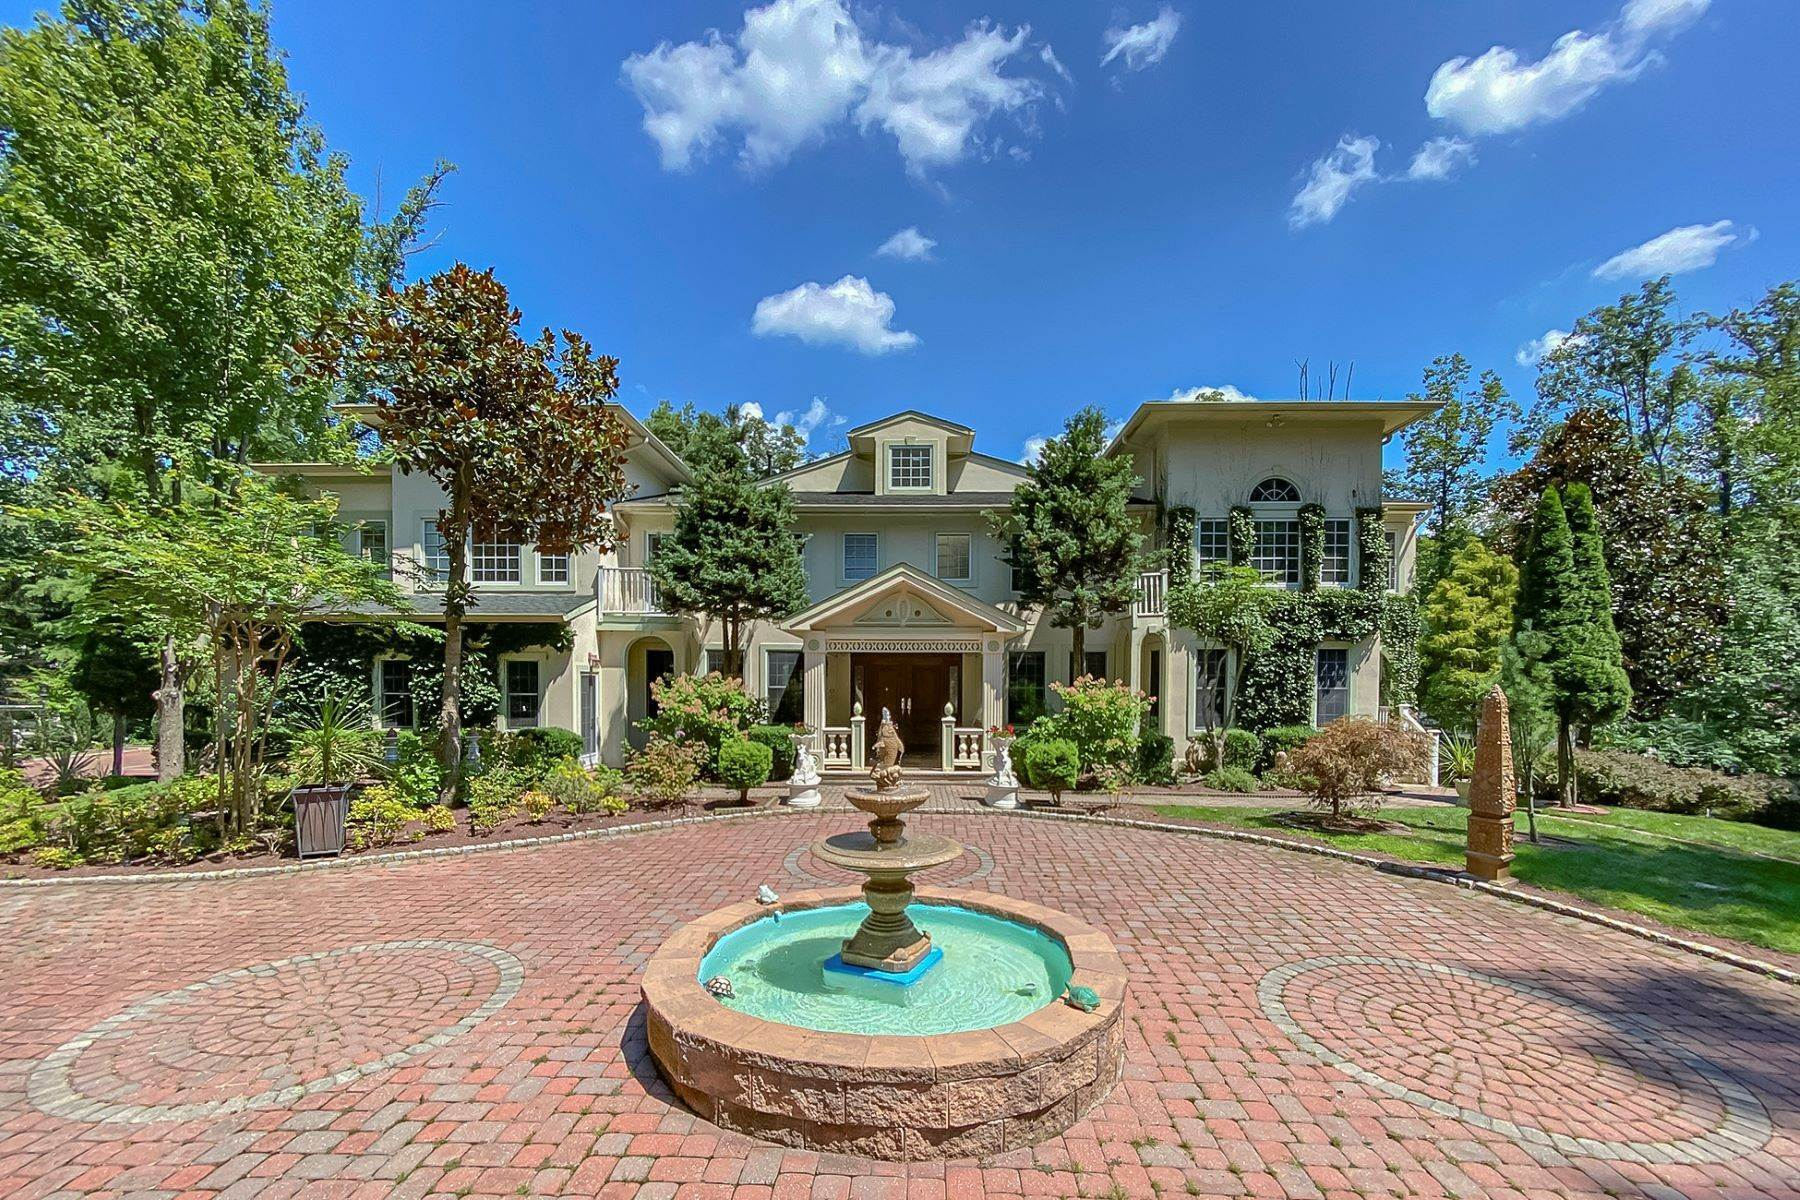 49. Single Family Homes for Sale at A Sprawling Showplace Where East Meets West 76 Pettit Place, Princeton, New Jersey 08540 United States